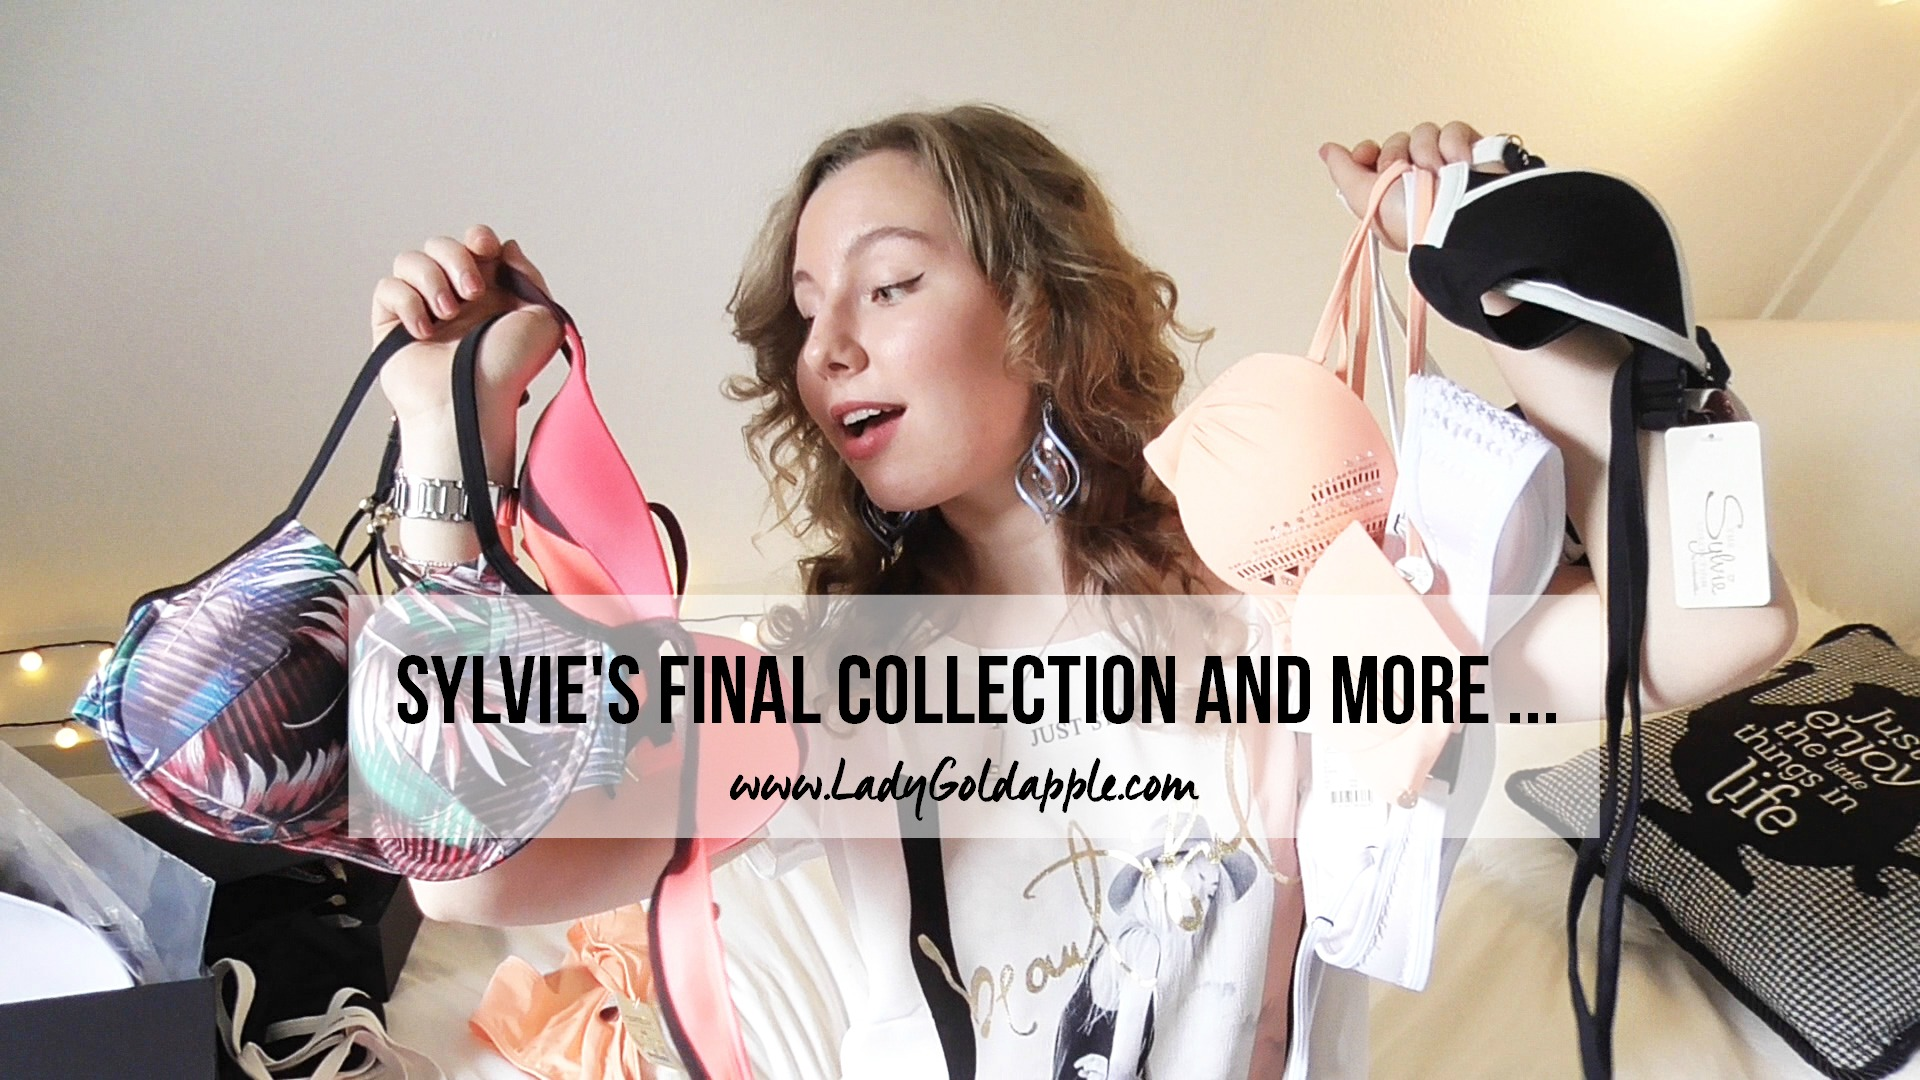 Sylvie's final collection and more